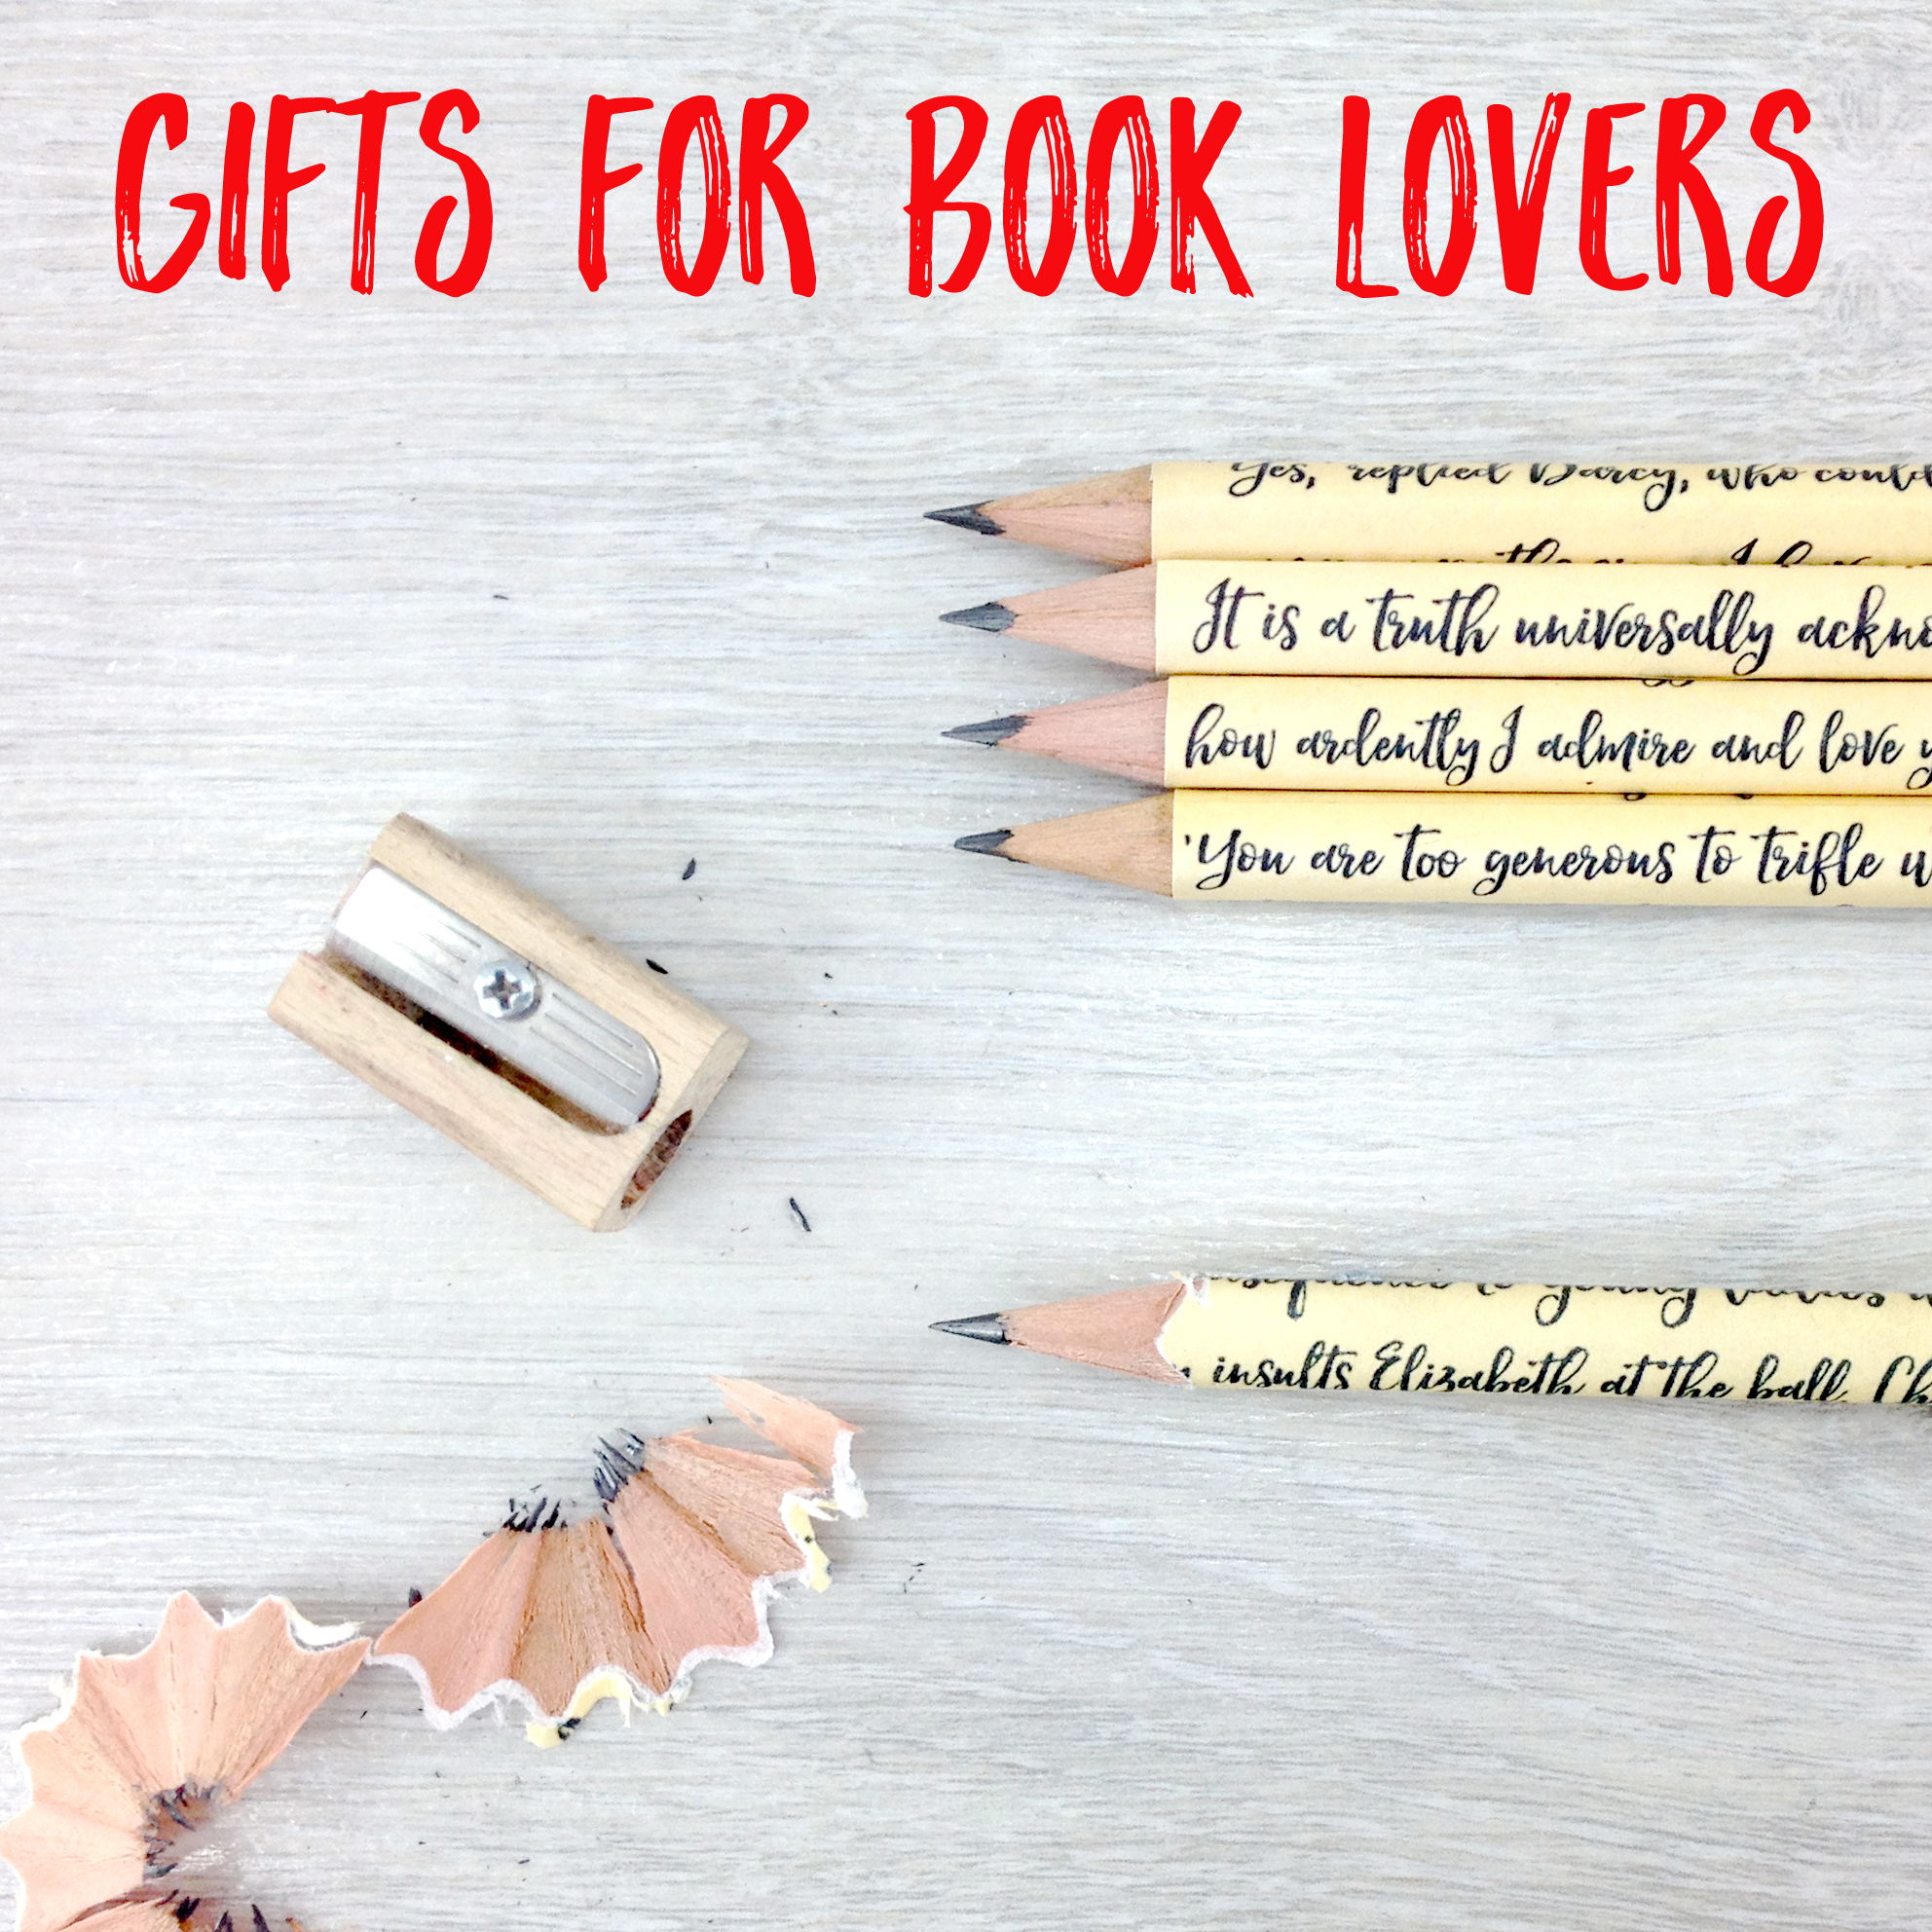 Christmas gifts for book lovers